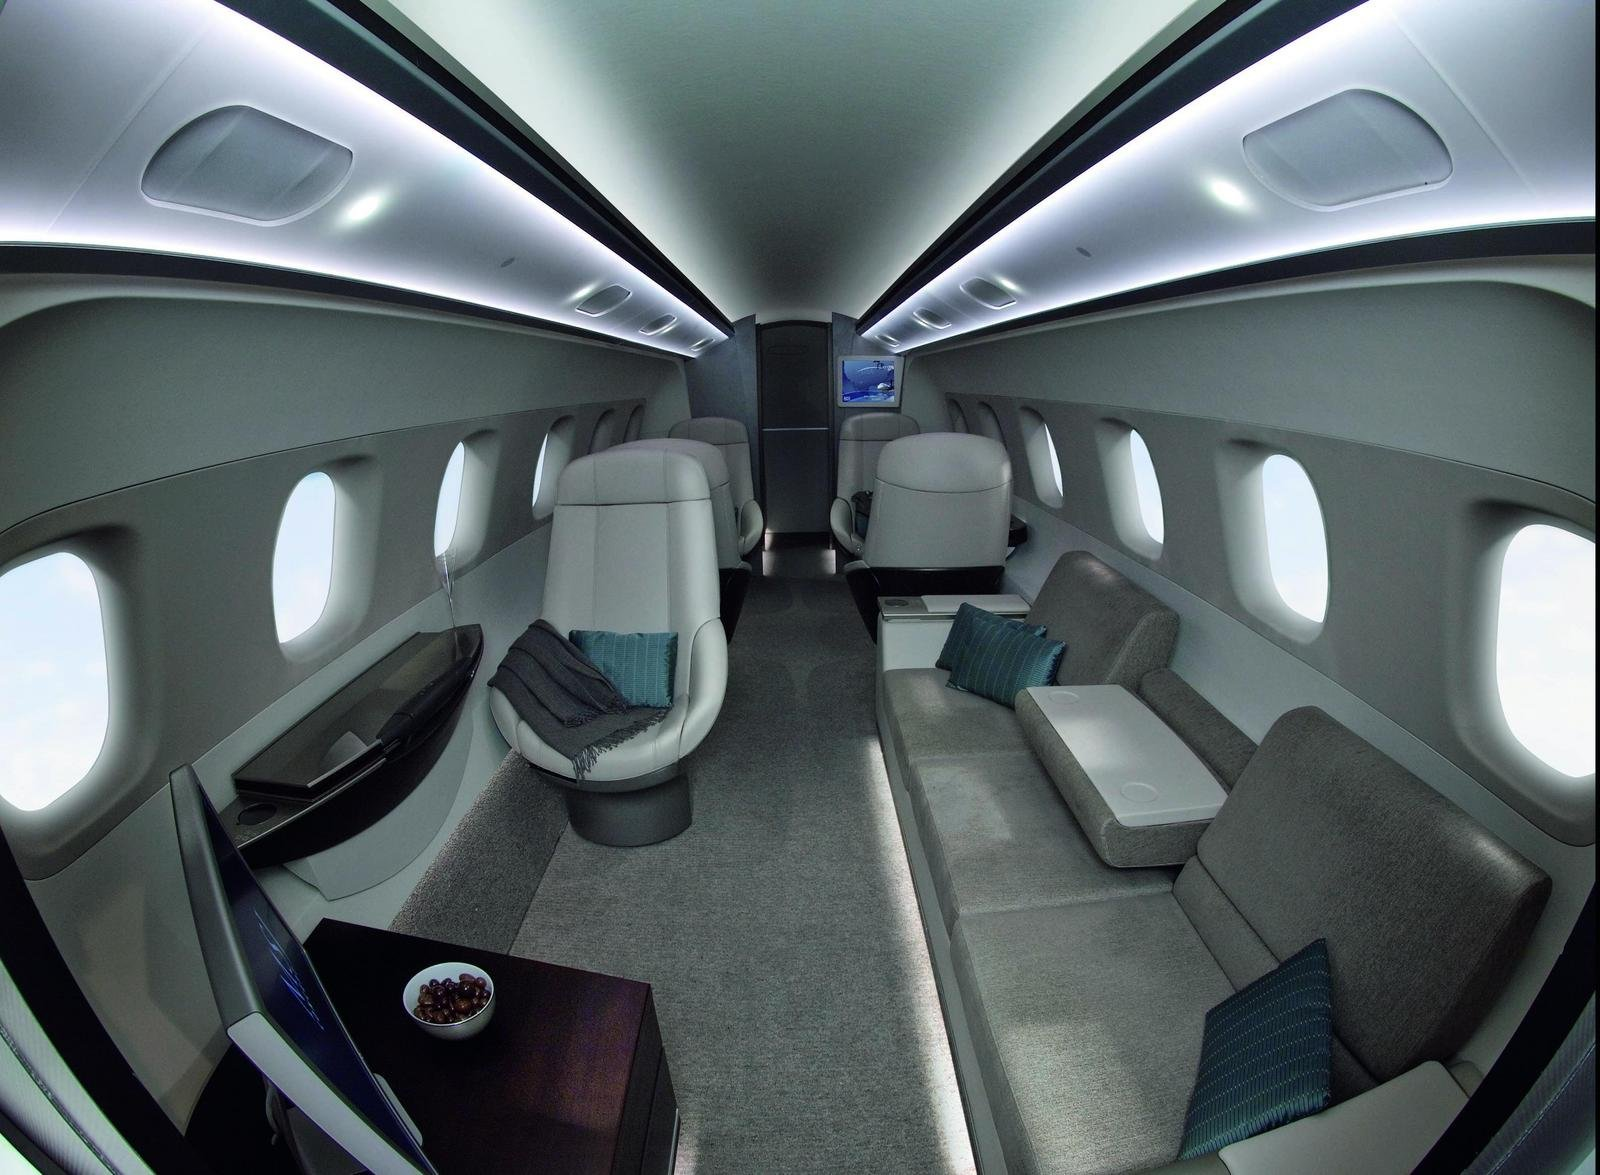 Bmw designs aircraft interior picture 207127 car news for Aircraft interior designs